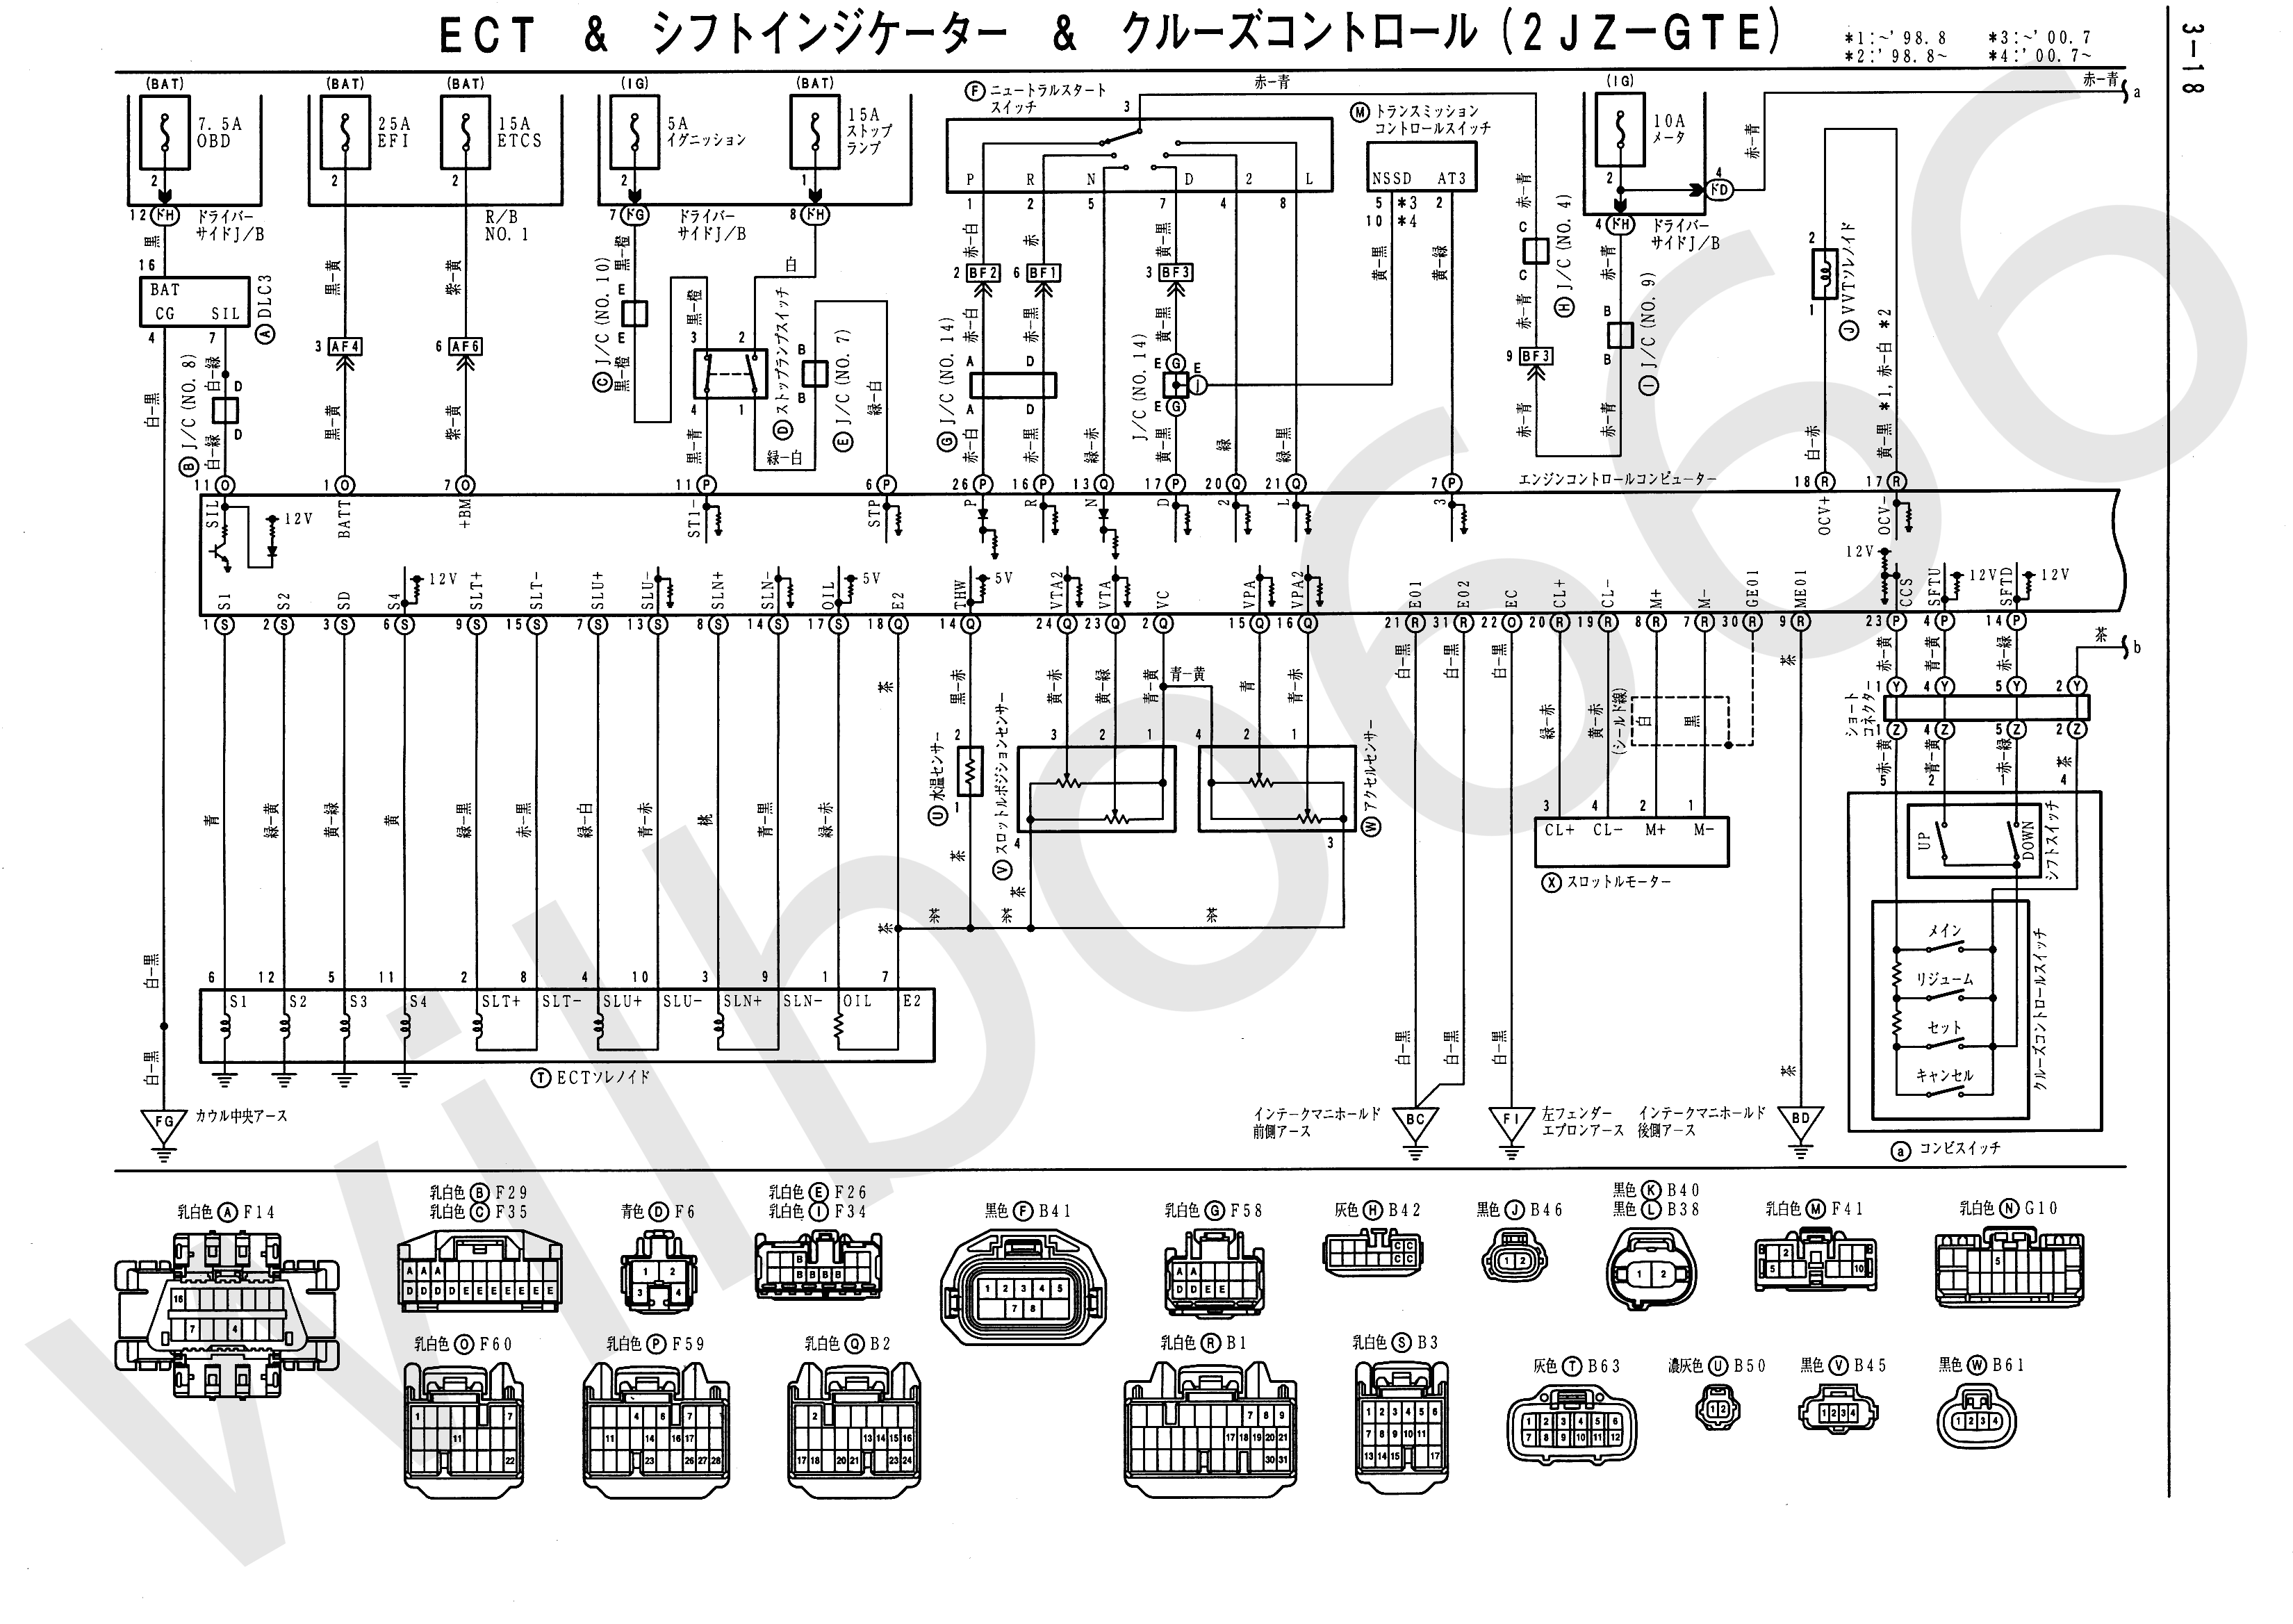 JZS161 Electrical Wiring Diagram 6748505 3 18 1jz wiring diagram light switch wiring diagram \u2022 free wiring  at eliteediting.co